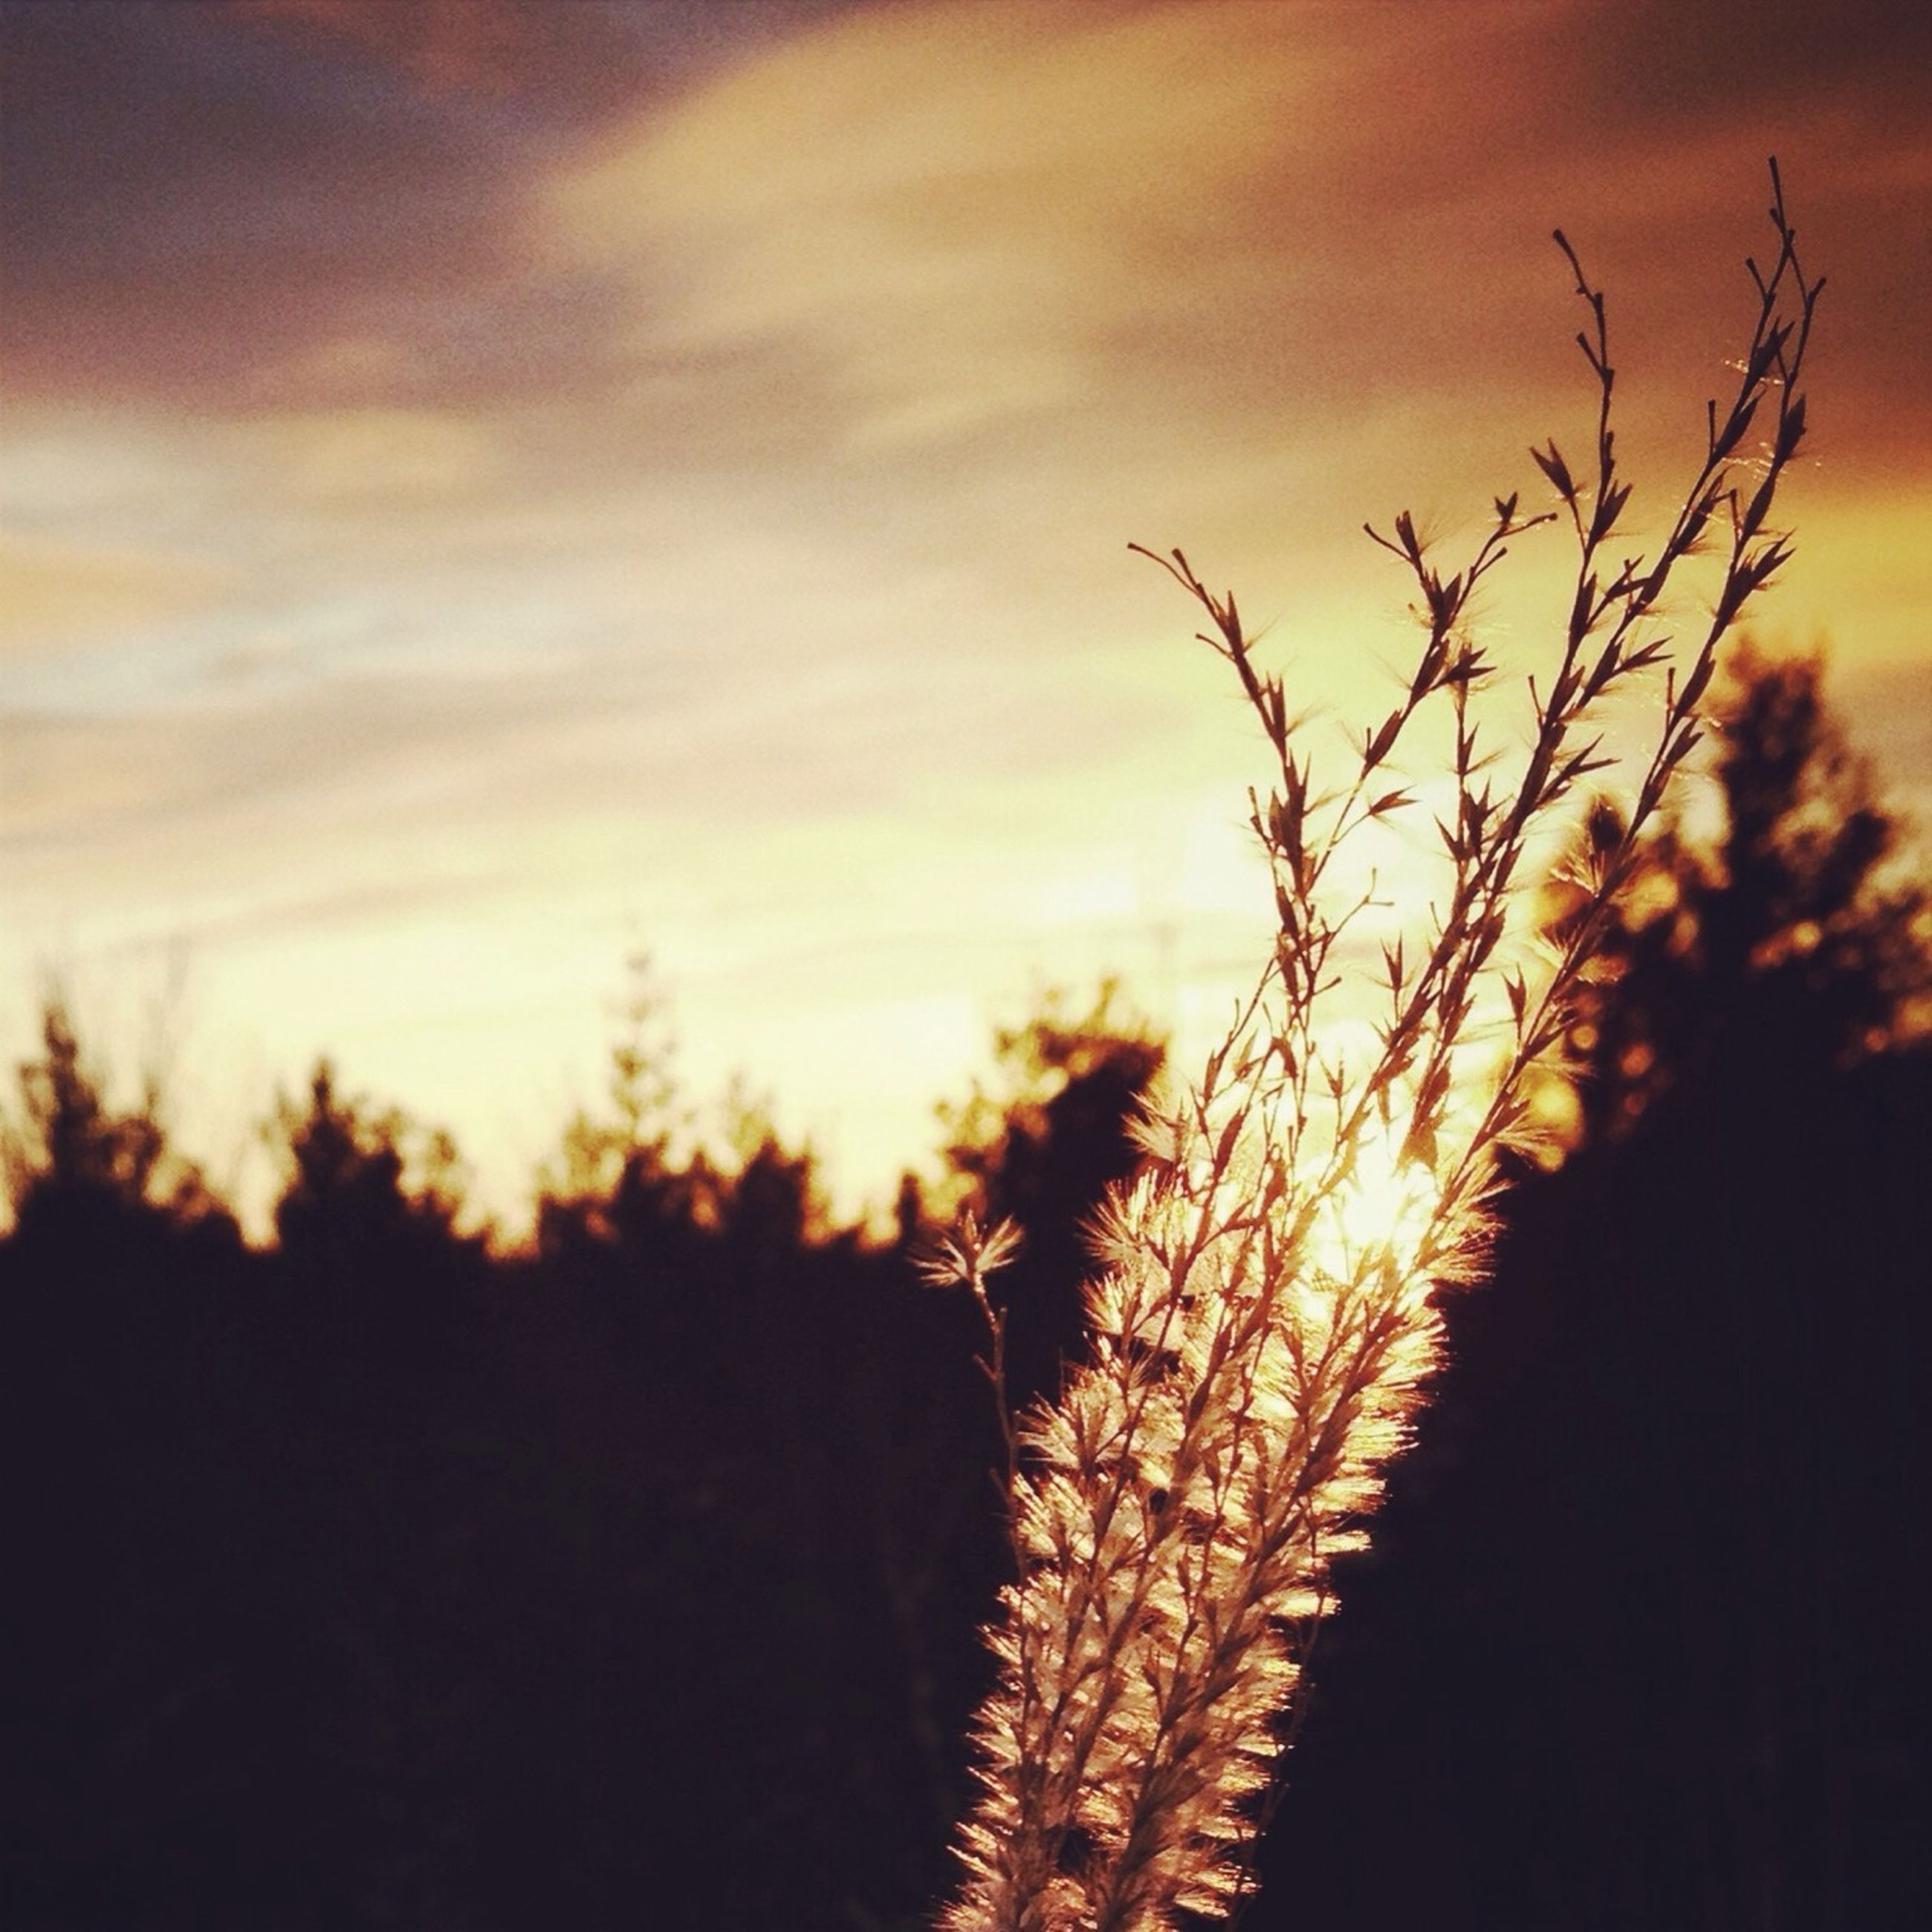 sunset, silhouette, sky, tranquility, beauty in nature, nature, orange color, growth, tranquil scene, plant, scenics, cloud - sky, focus on foreground, outdoors, idyllic, landscape, tree, field, no people, close-up